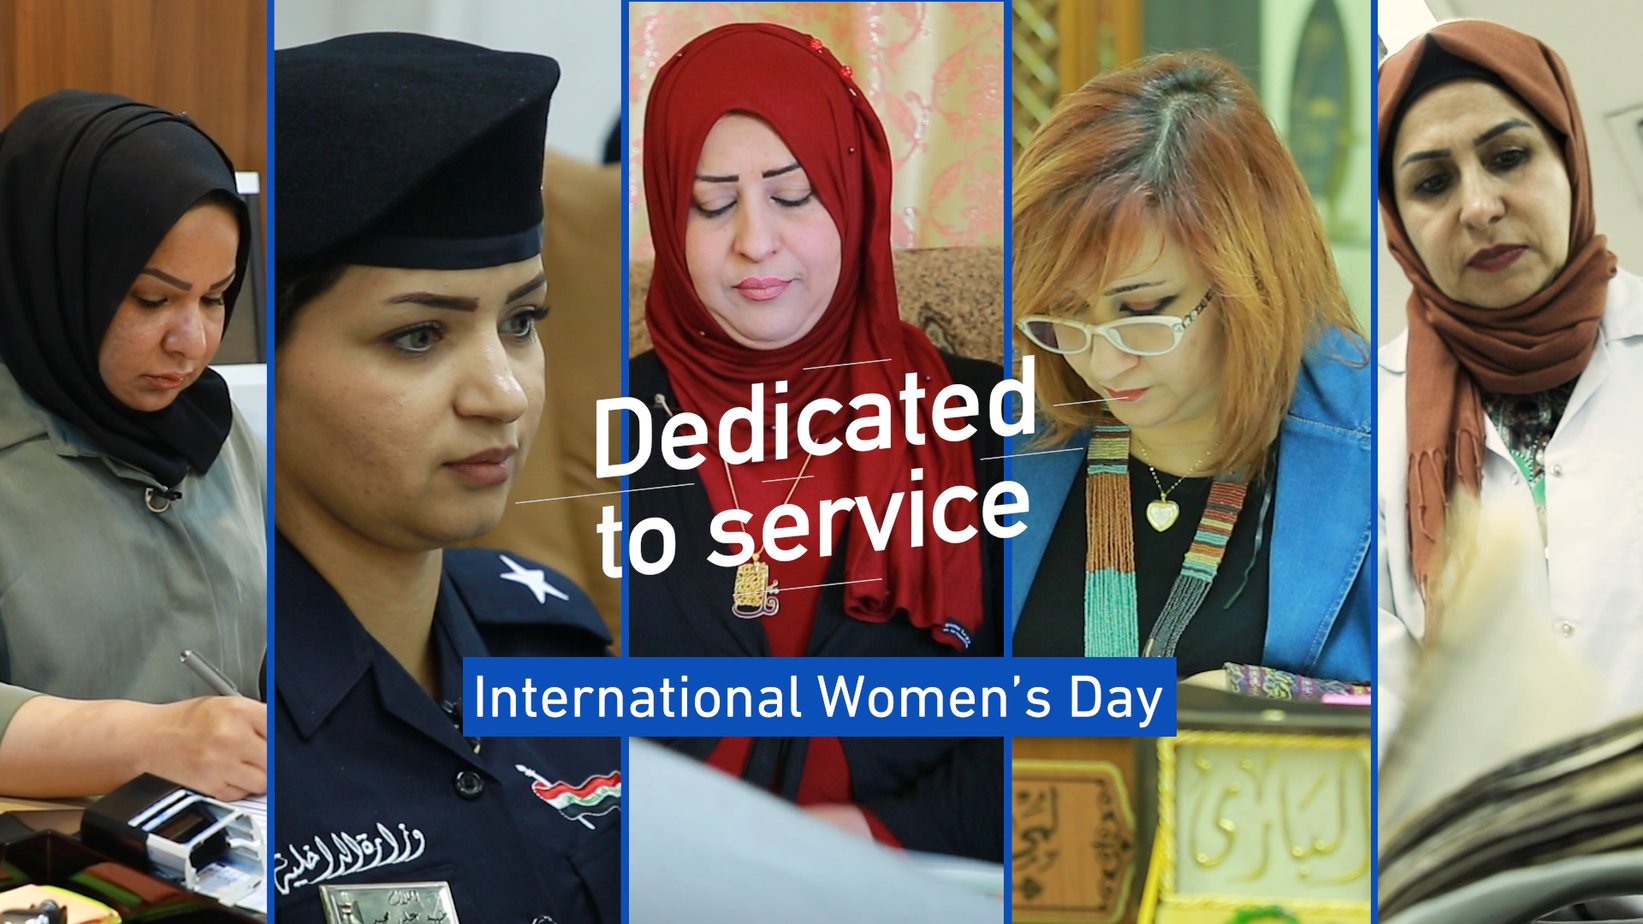 Our appreciation for her distinguished role, and for the occasion of International Women's Day .... Director General of government contracts in ... Unnamed-1